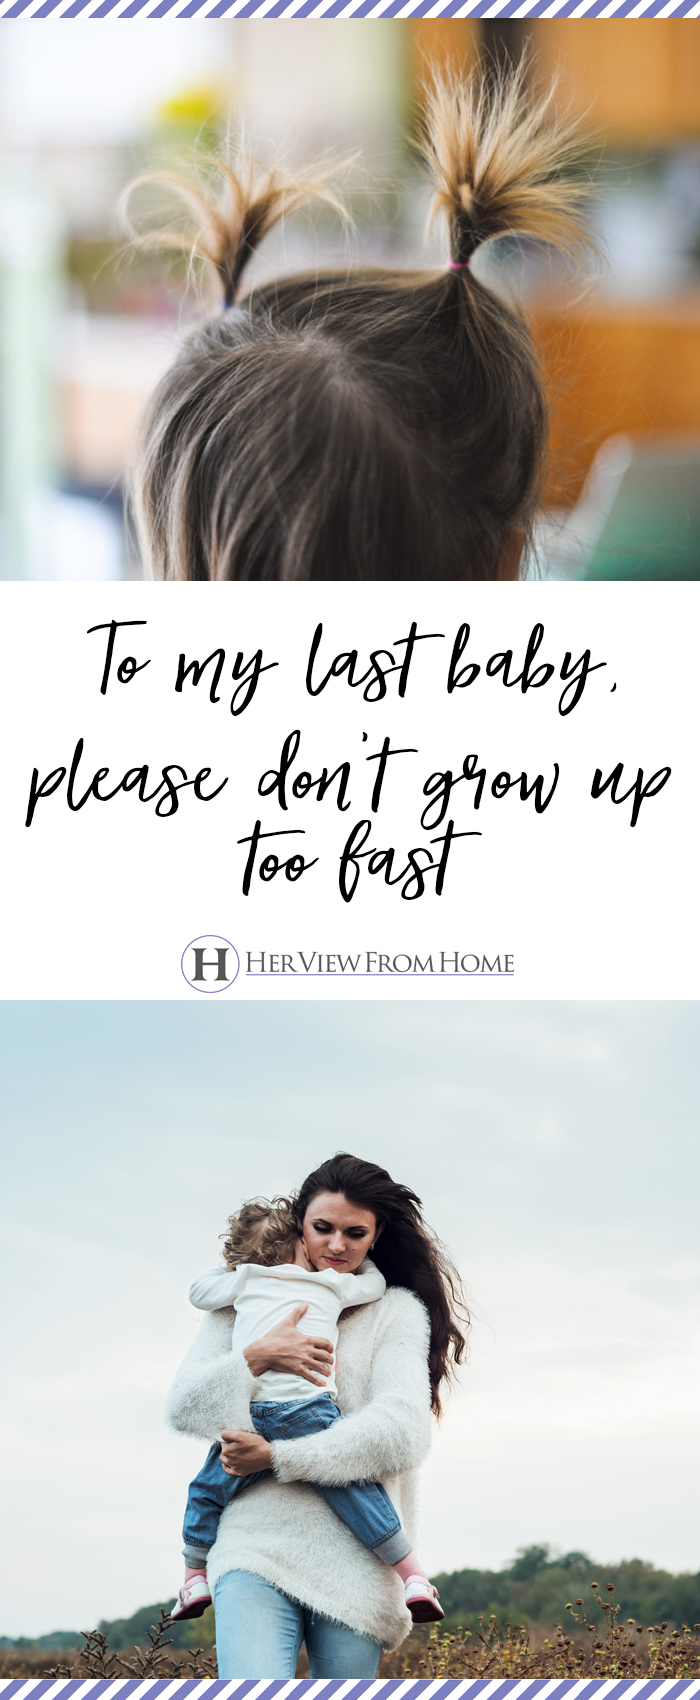 Right now your innocence melts my heart as quickly as your determination to test my patience wears it down. And it's worth all of it. www.herviewfromhome.com